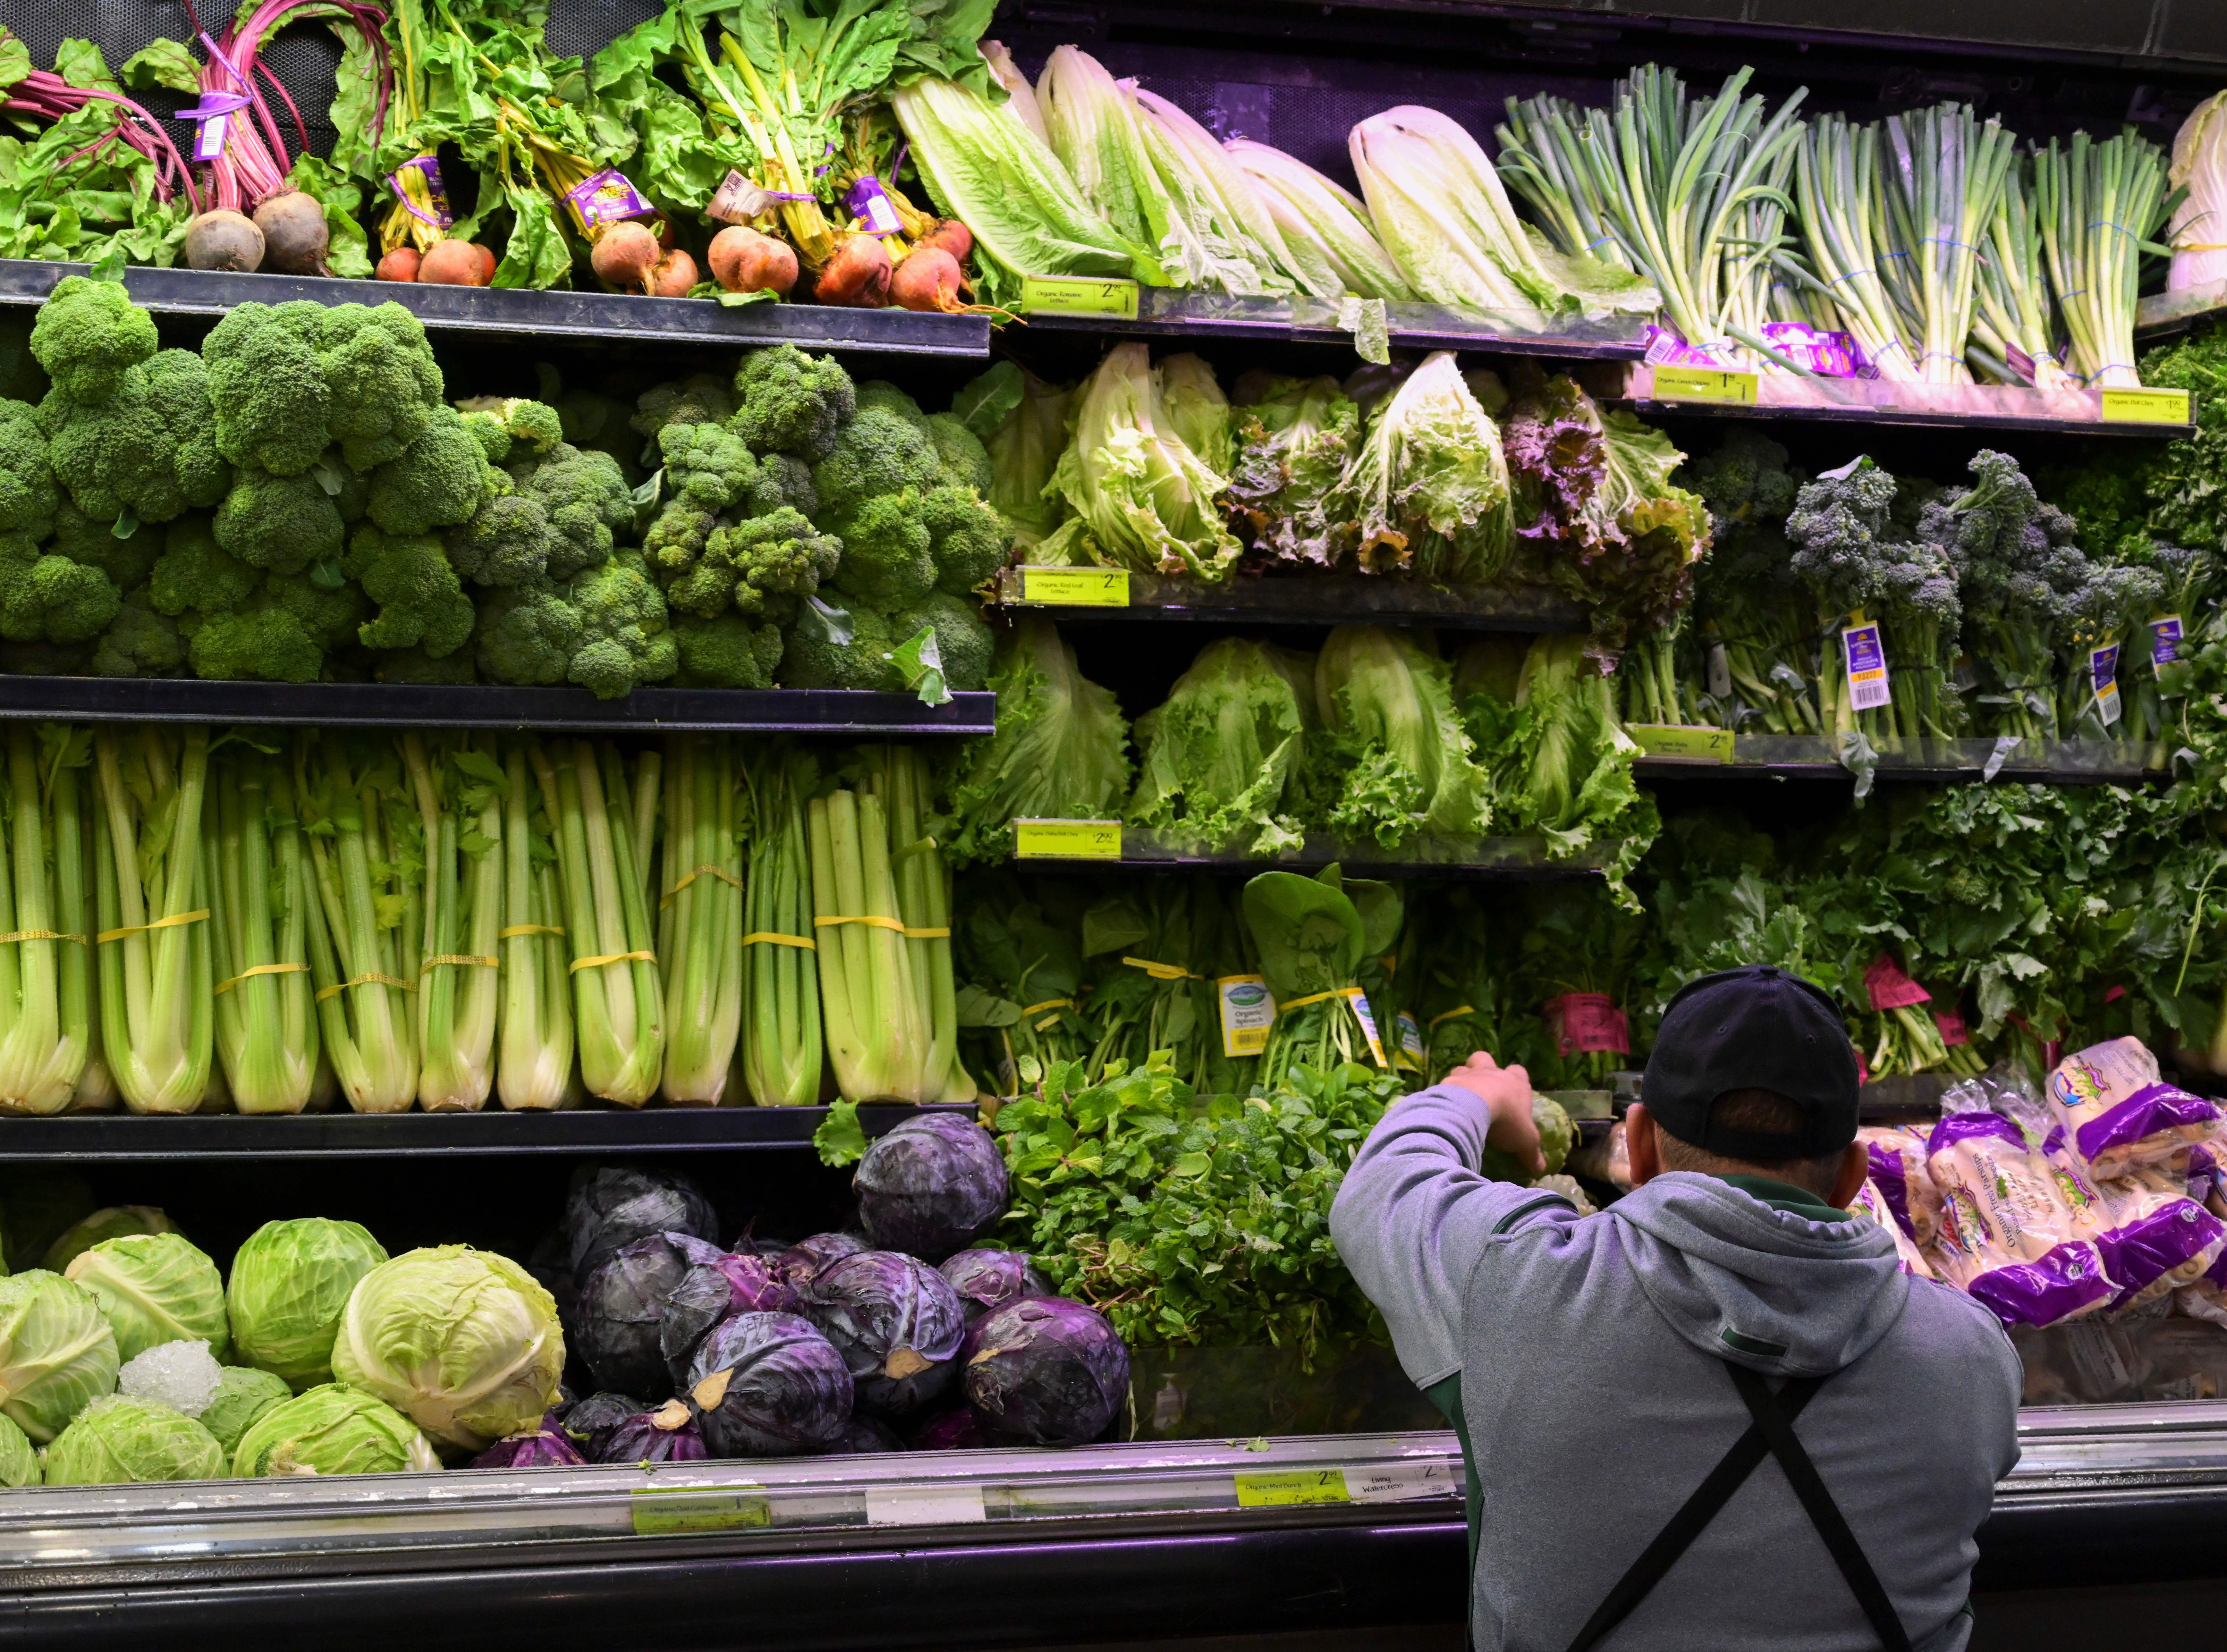 A produce worker stocks shelves near romaine lettuce (top shelf center) at a supermarket in Washington, DC on November 20, 2018. (ANDREW CABALLERO-REYNOLDS/AFP/Getty Images)